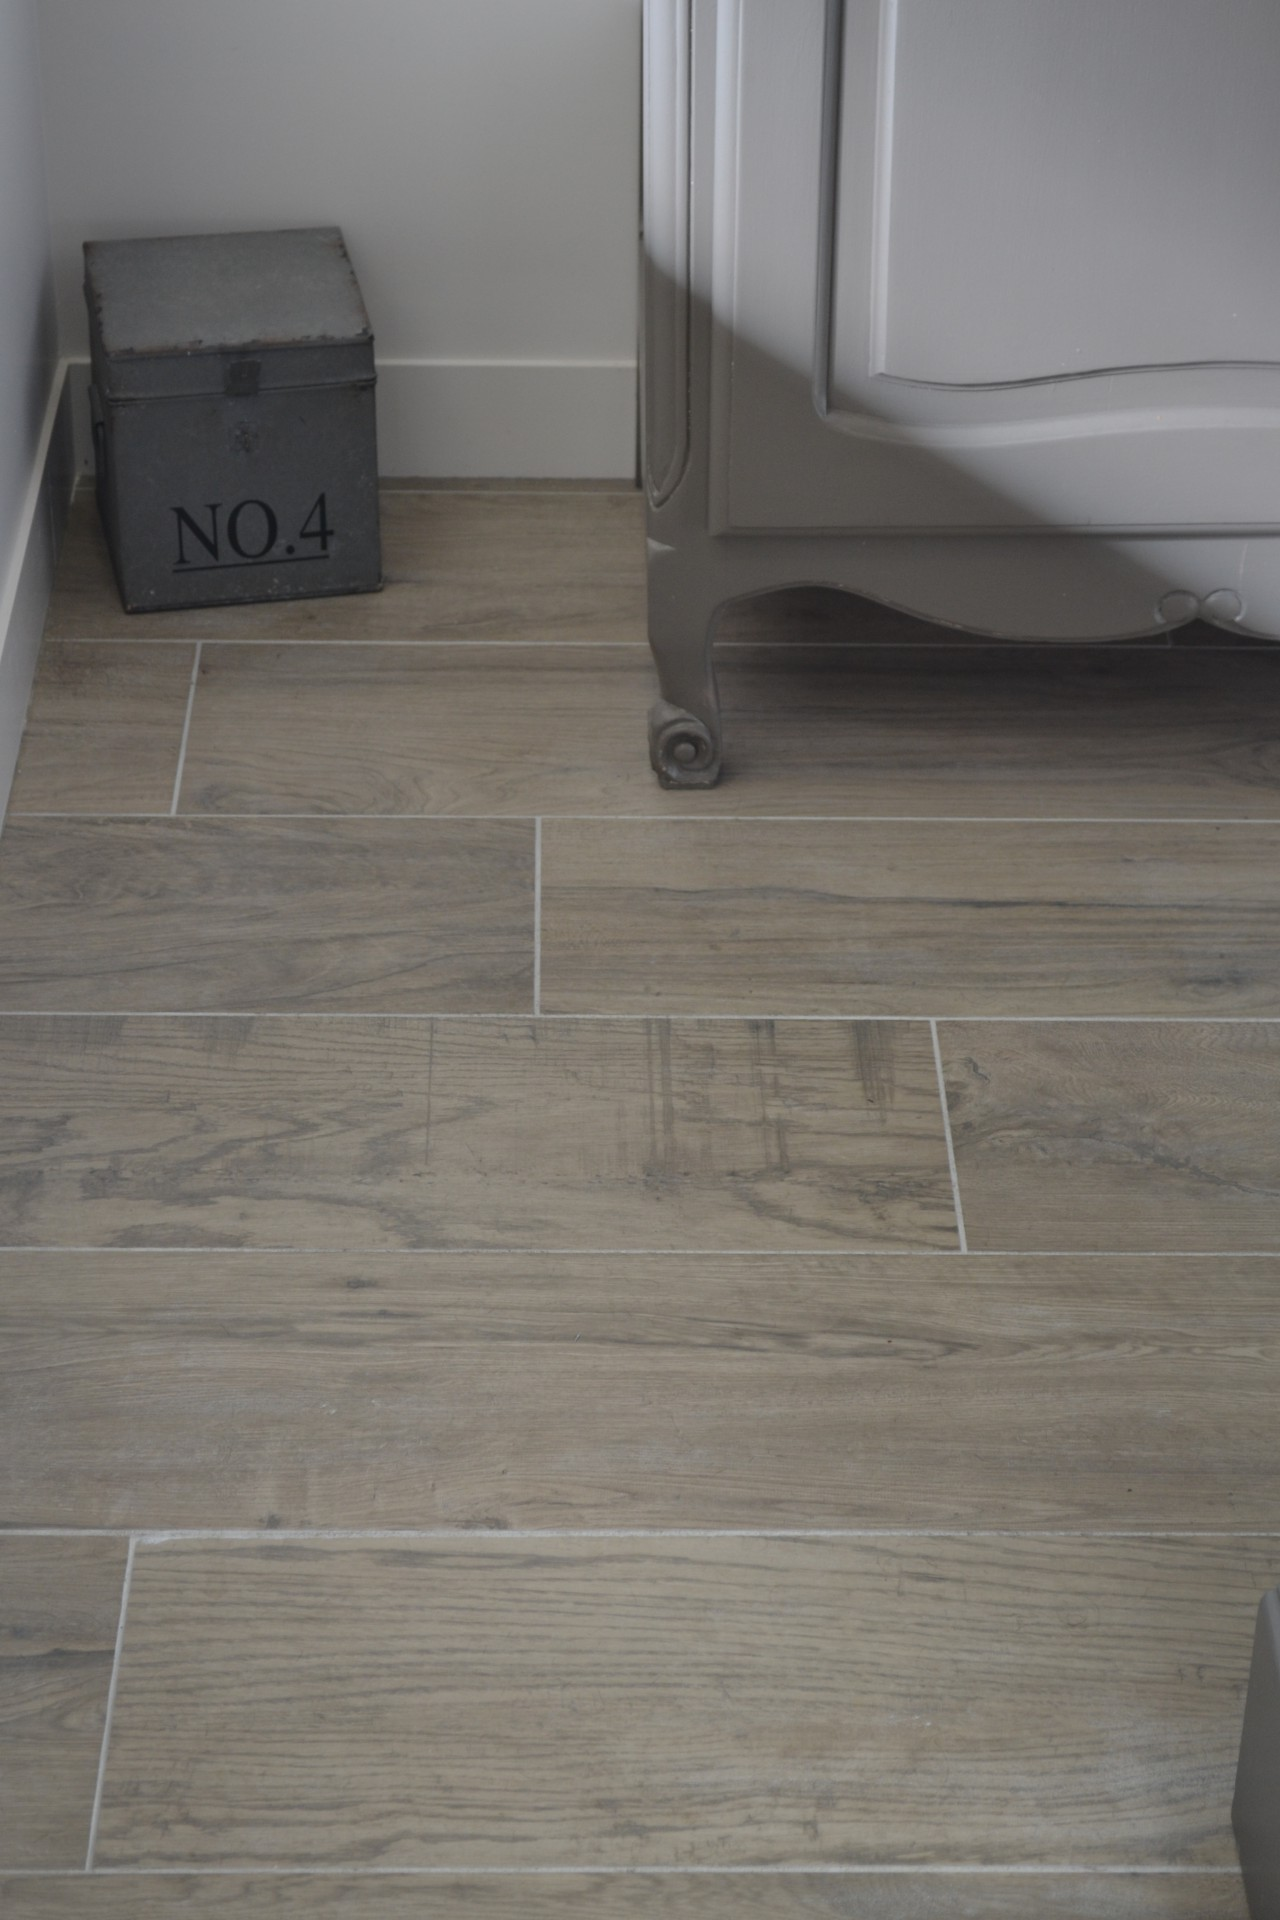 Poser du carrelage imitation parquet for Pose de joint carrelage salle de bain